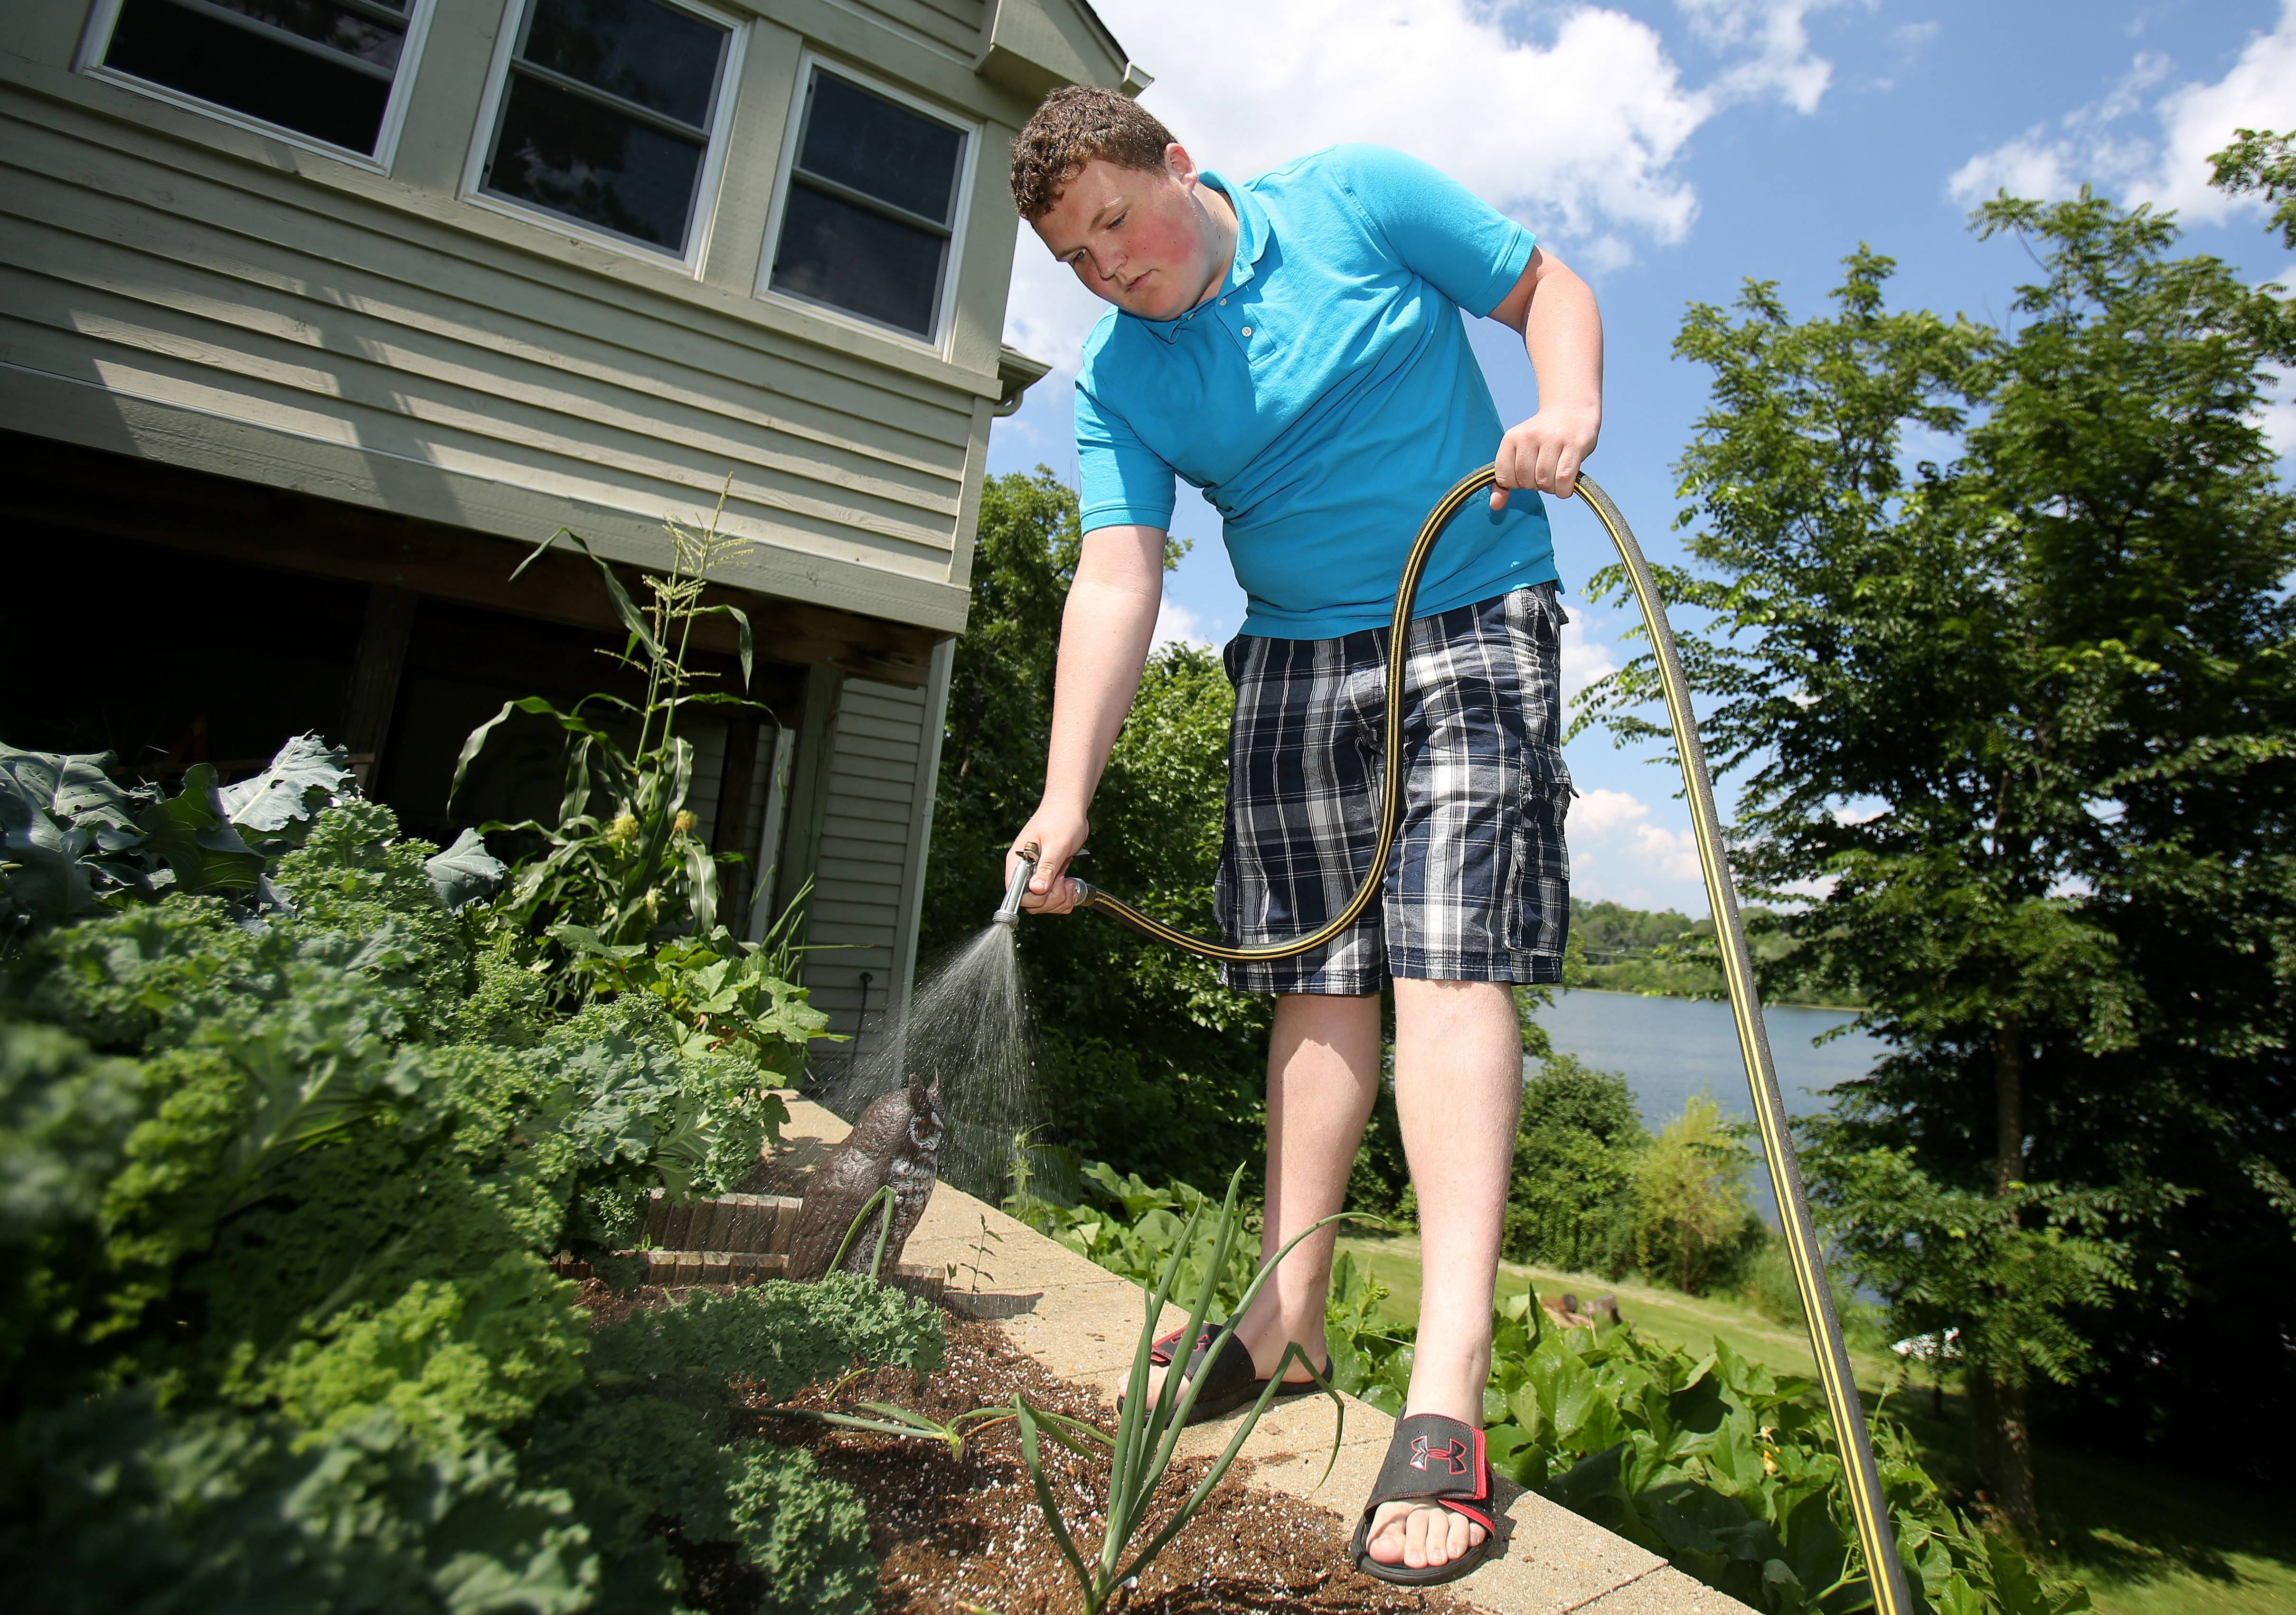 Sixteen-year-old Max McKeough, who has Asperger's syndrome, works on his vegetable garden a his home in Antioch. He just graduated from Antioch Community High School and gives talks about Asperger's to groups of parents and educators.